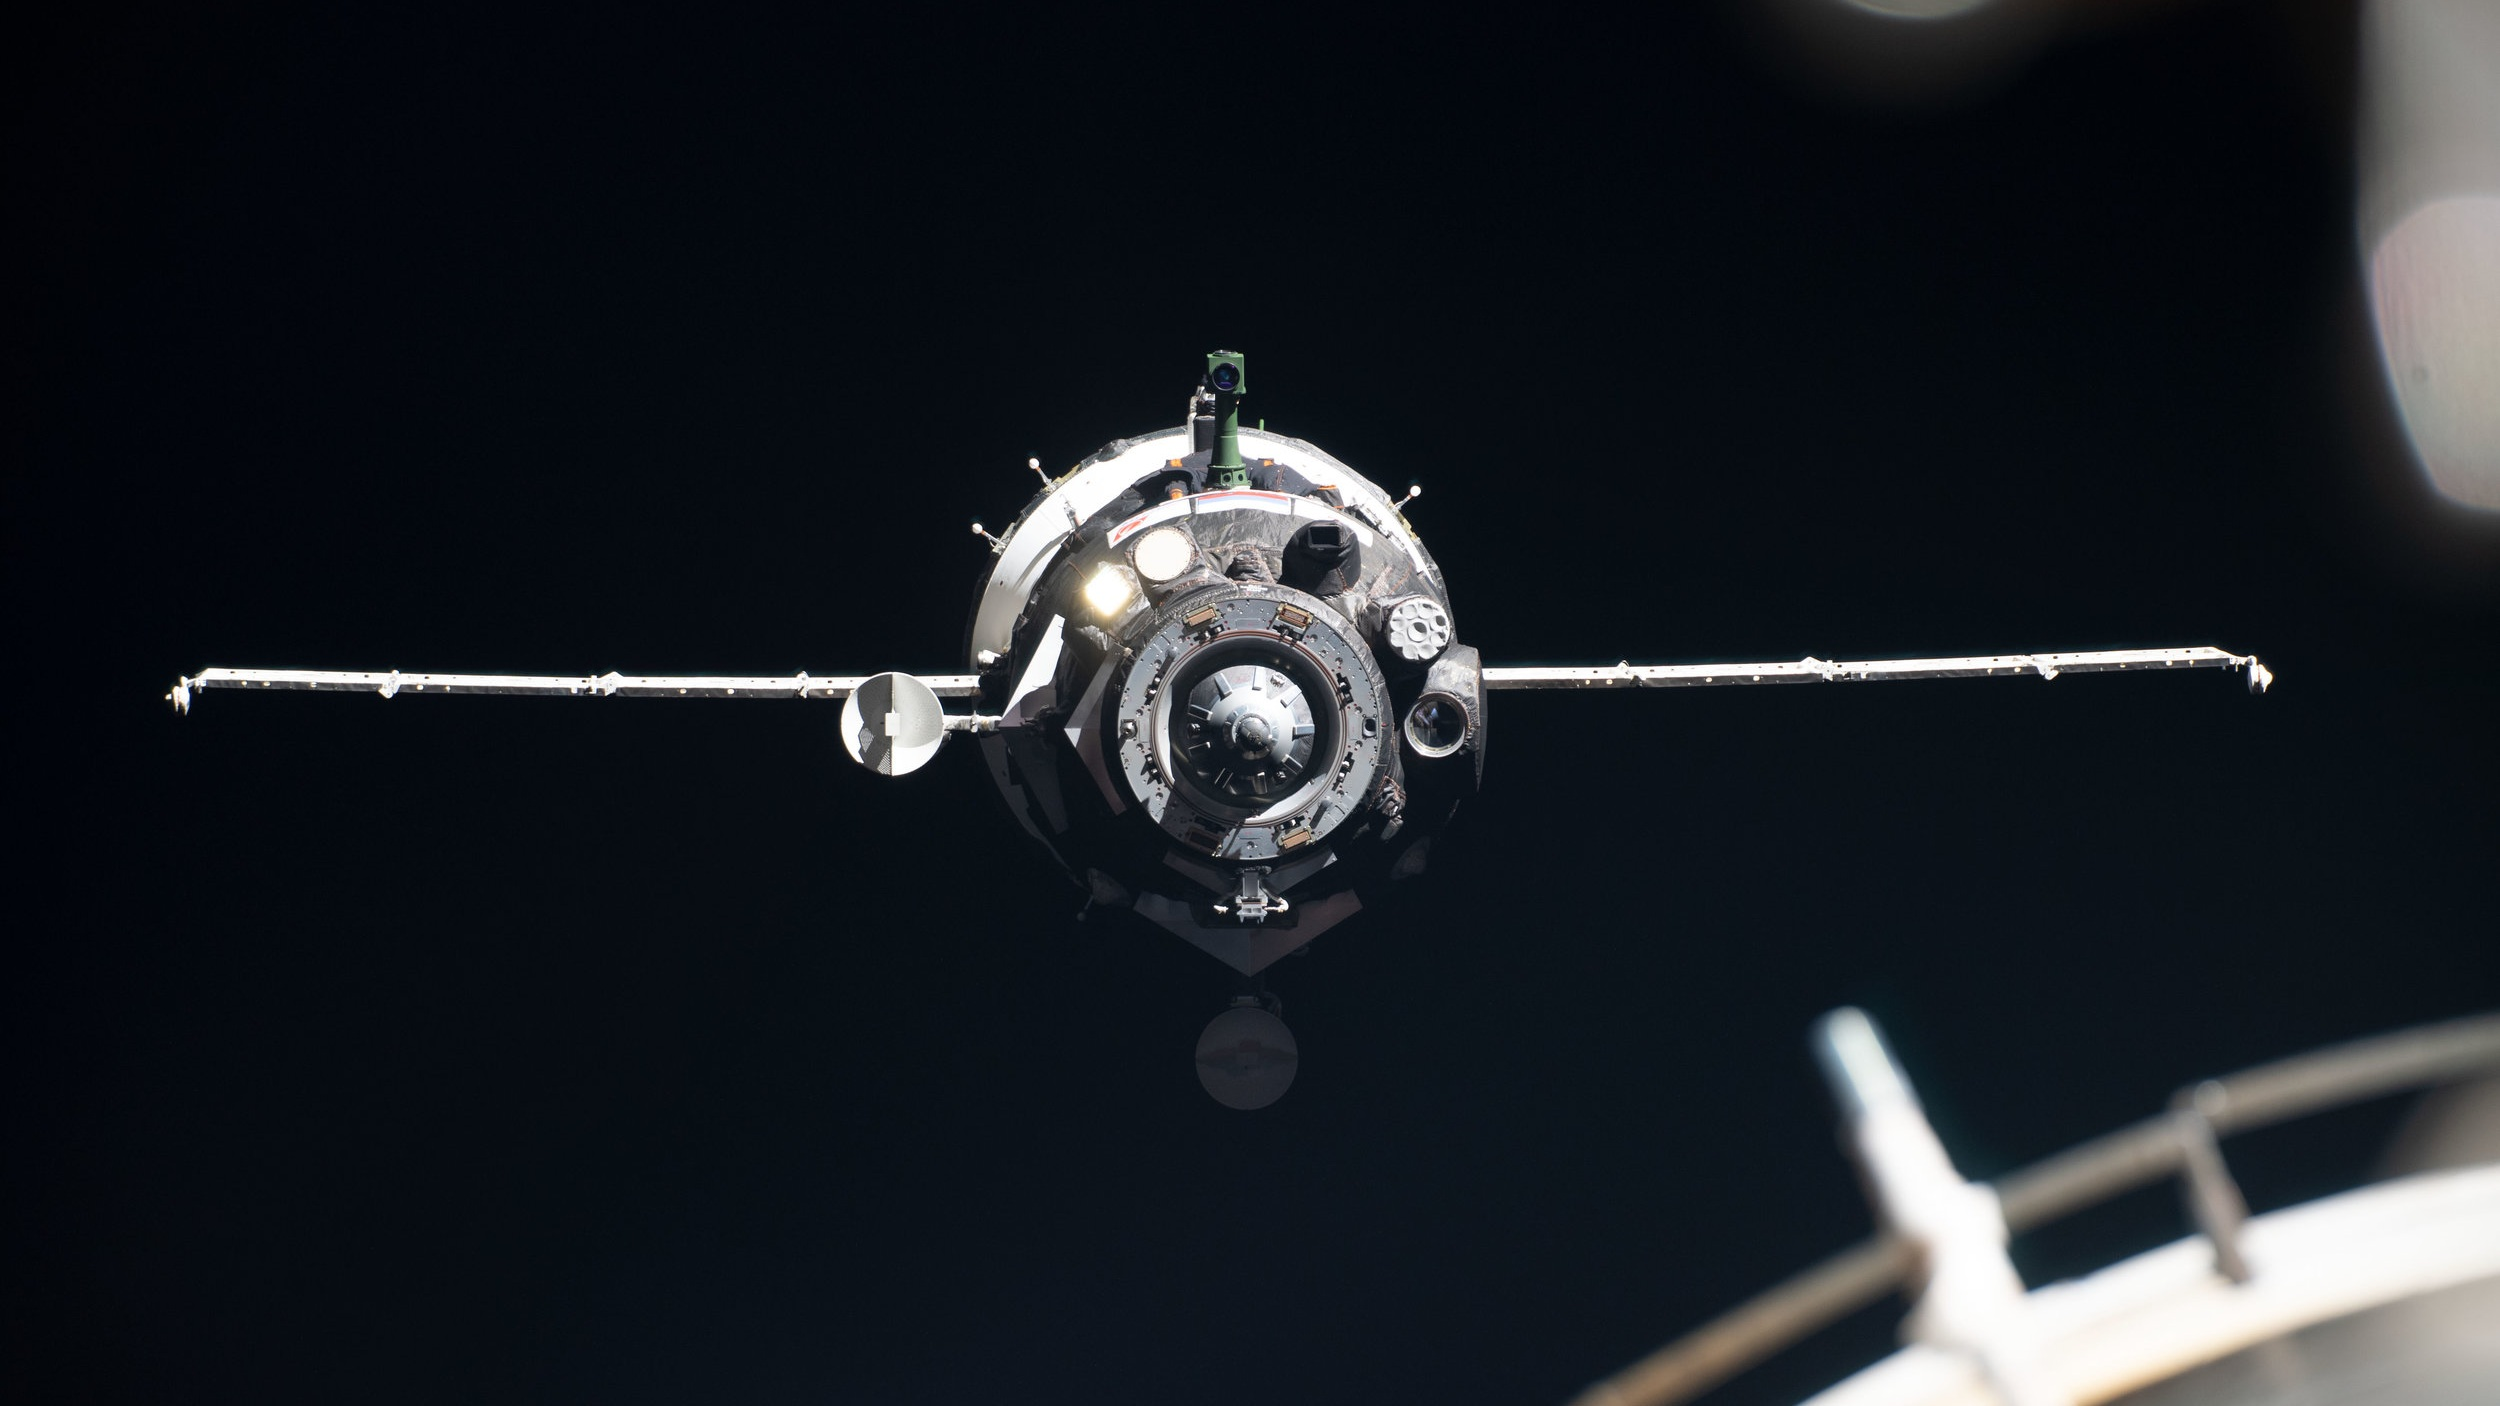 Soyuz MS-13 just before docking. Credit: NASA